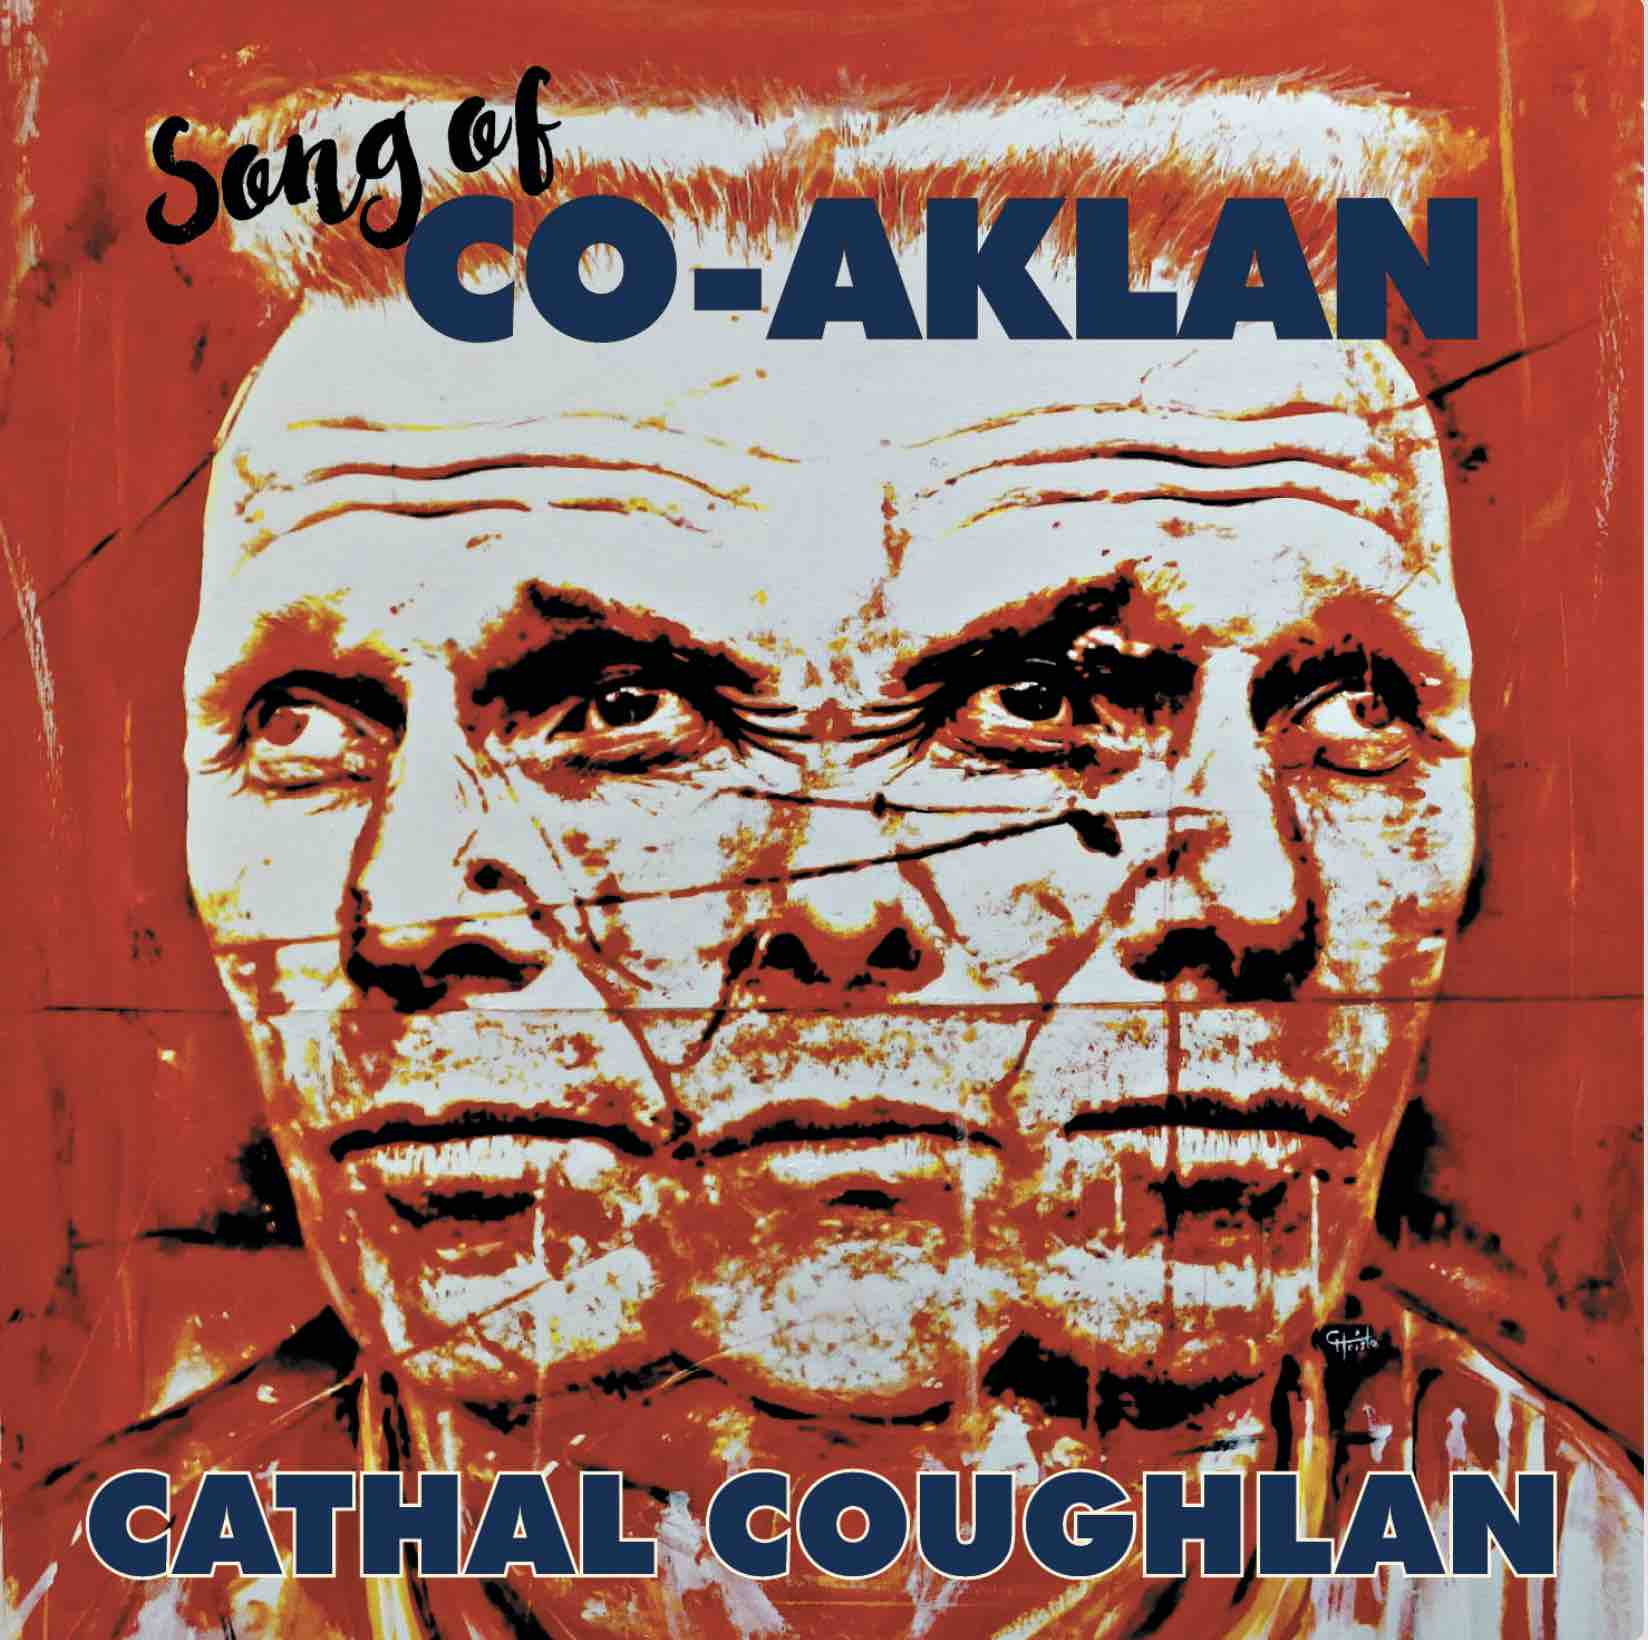 Cathal Coughlan – Song of Co-Aklan (cover)